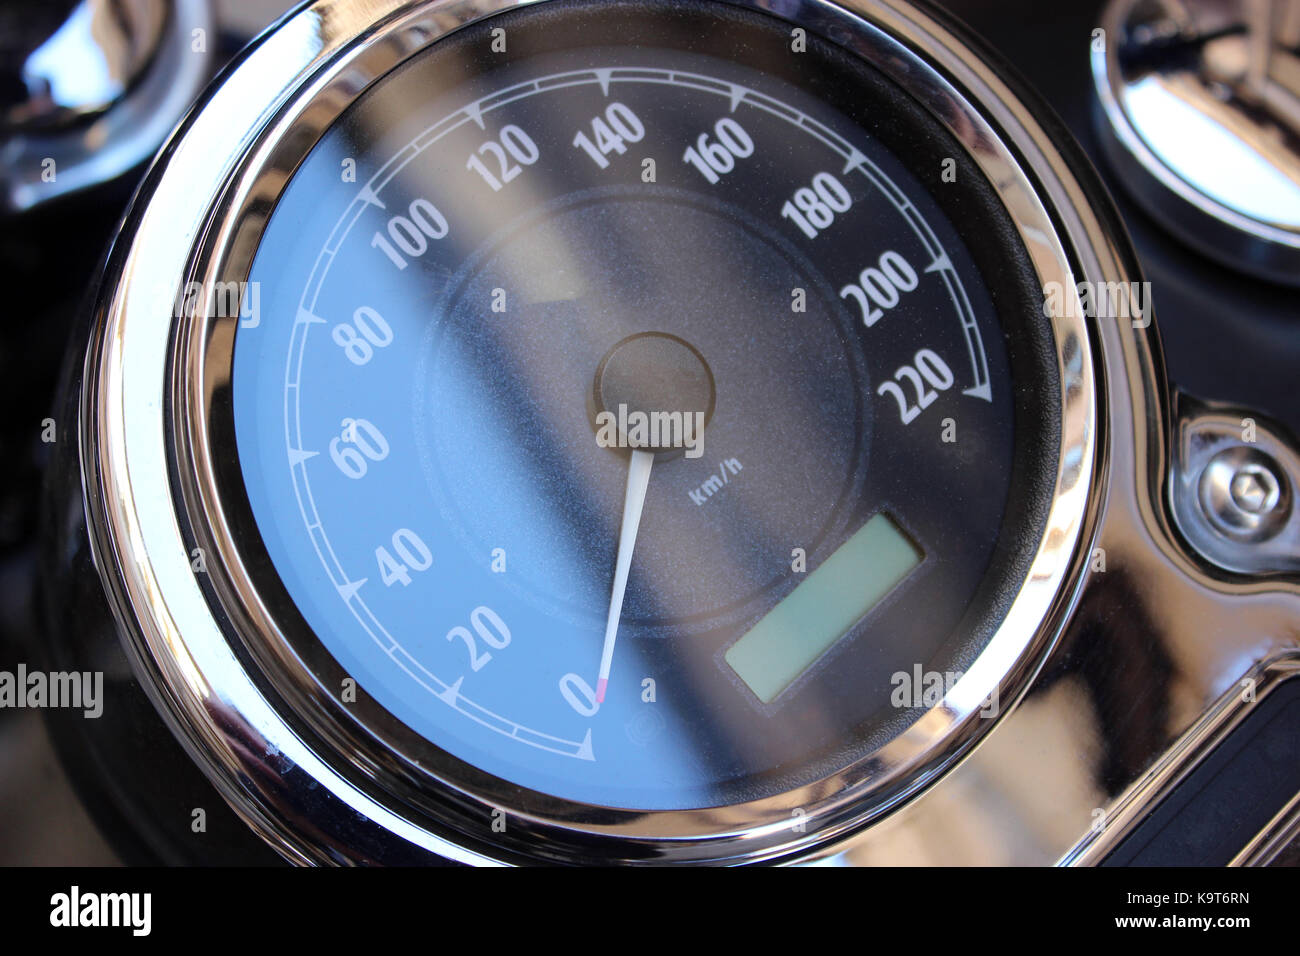 Speedometer of Motorcycle. Black and White Motorcycle Speedometer - Stock Image